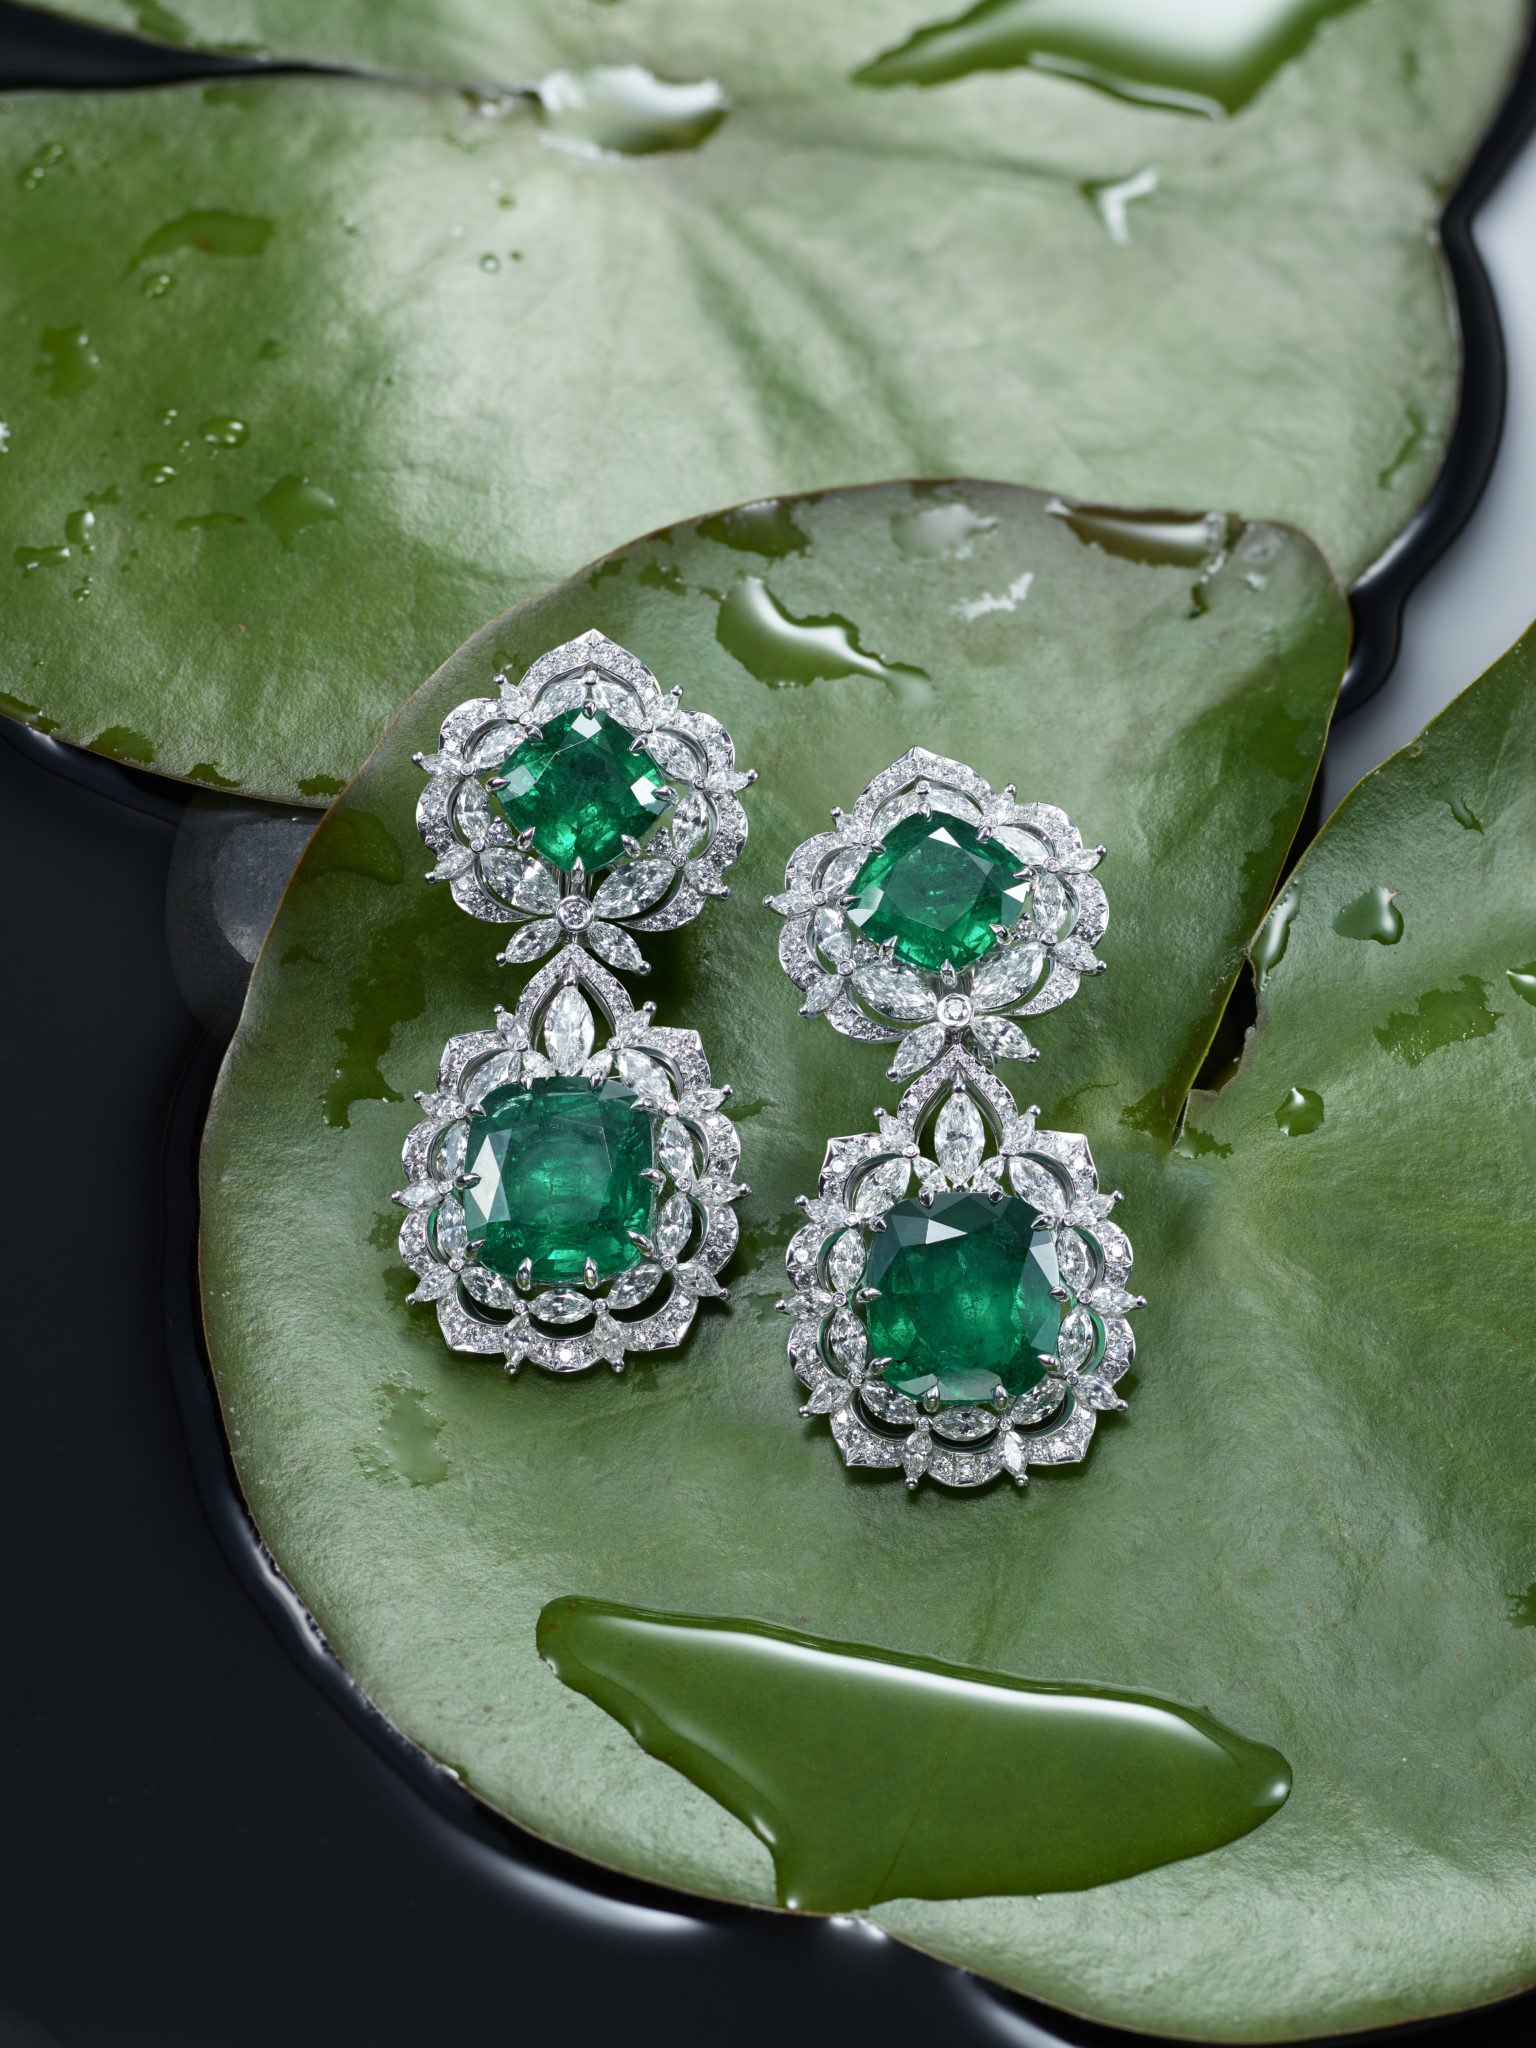 Earrings from the Green Carpet Collection (2)